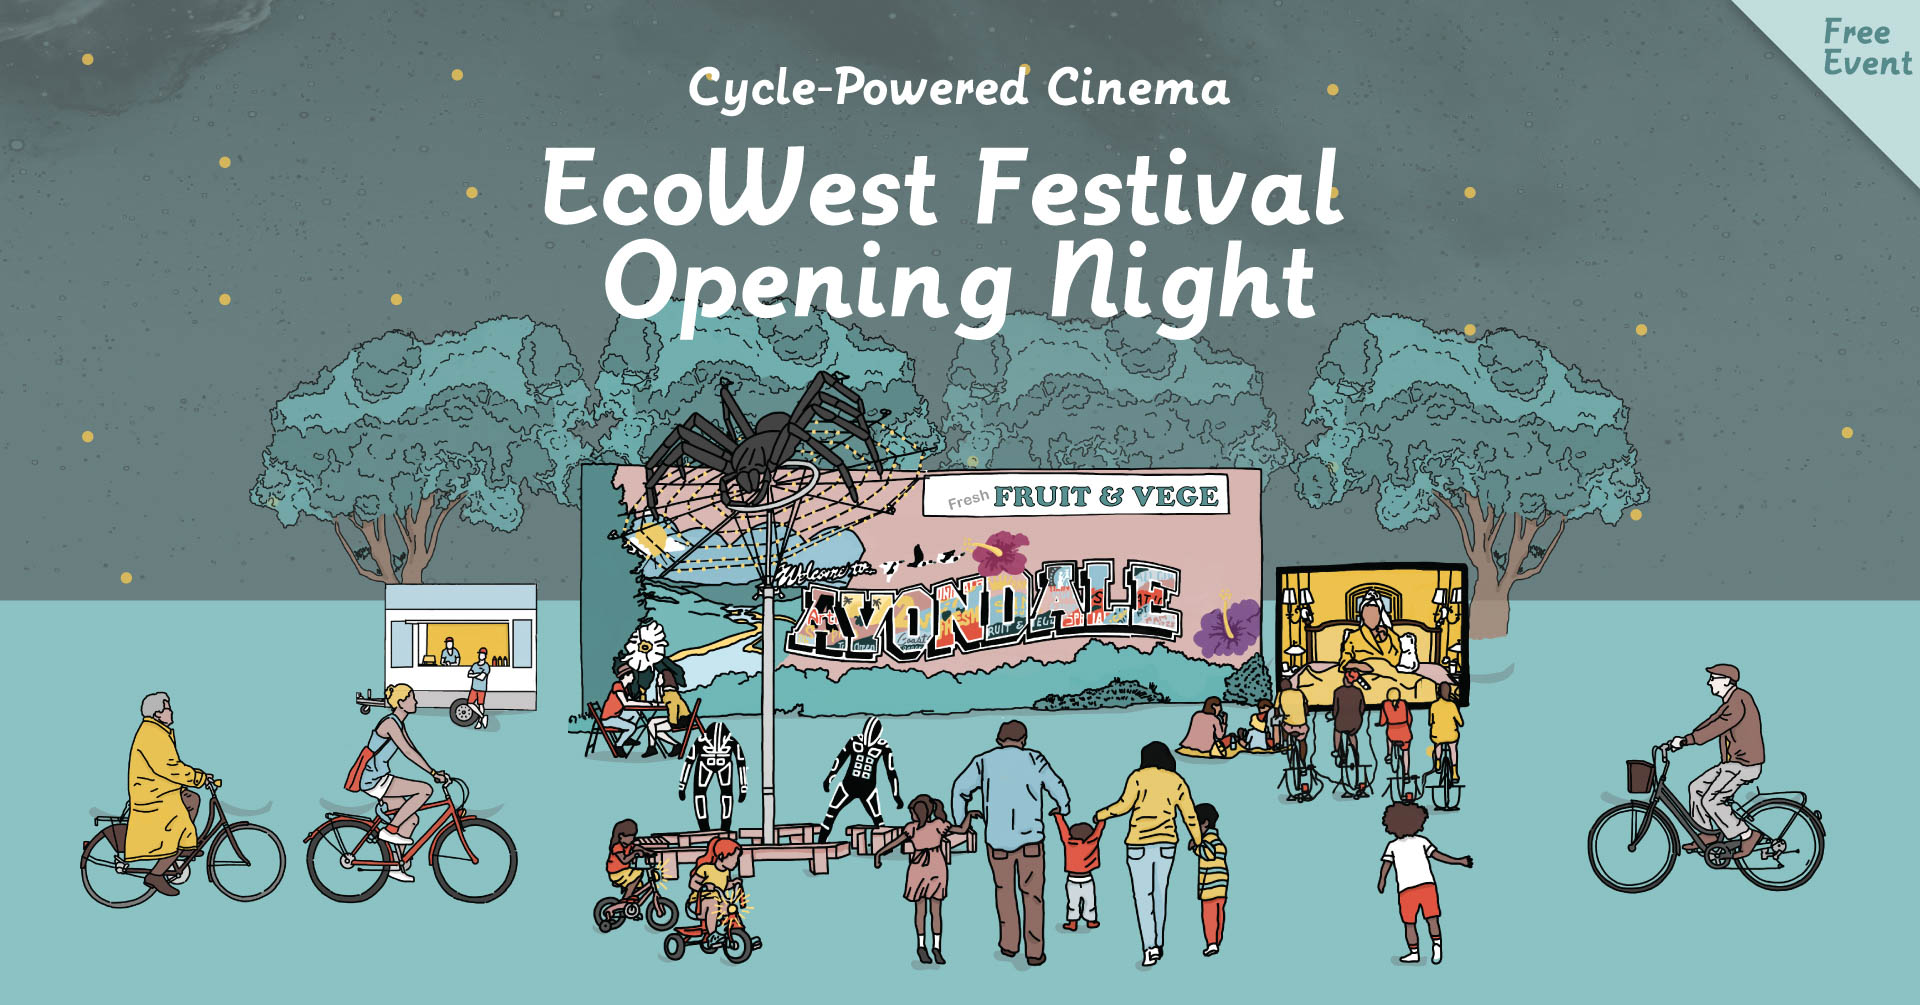 EcoWest Celebration: Cycle-Powered Cinema